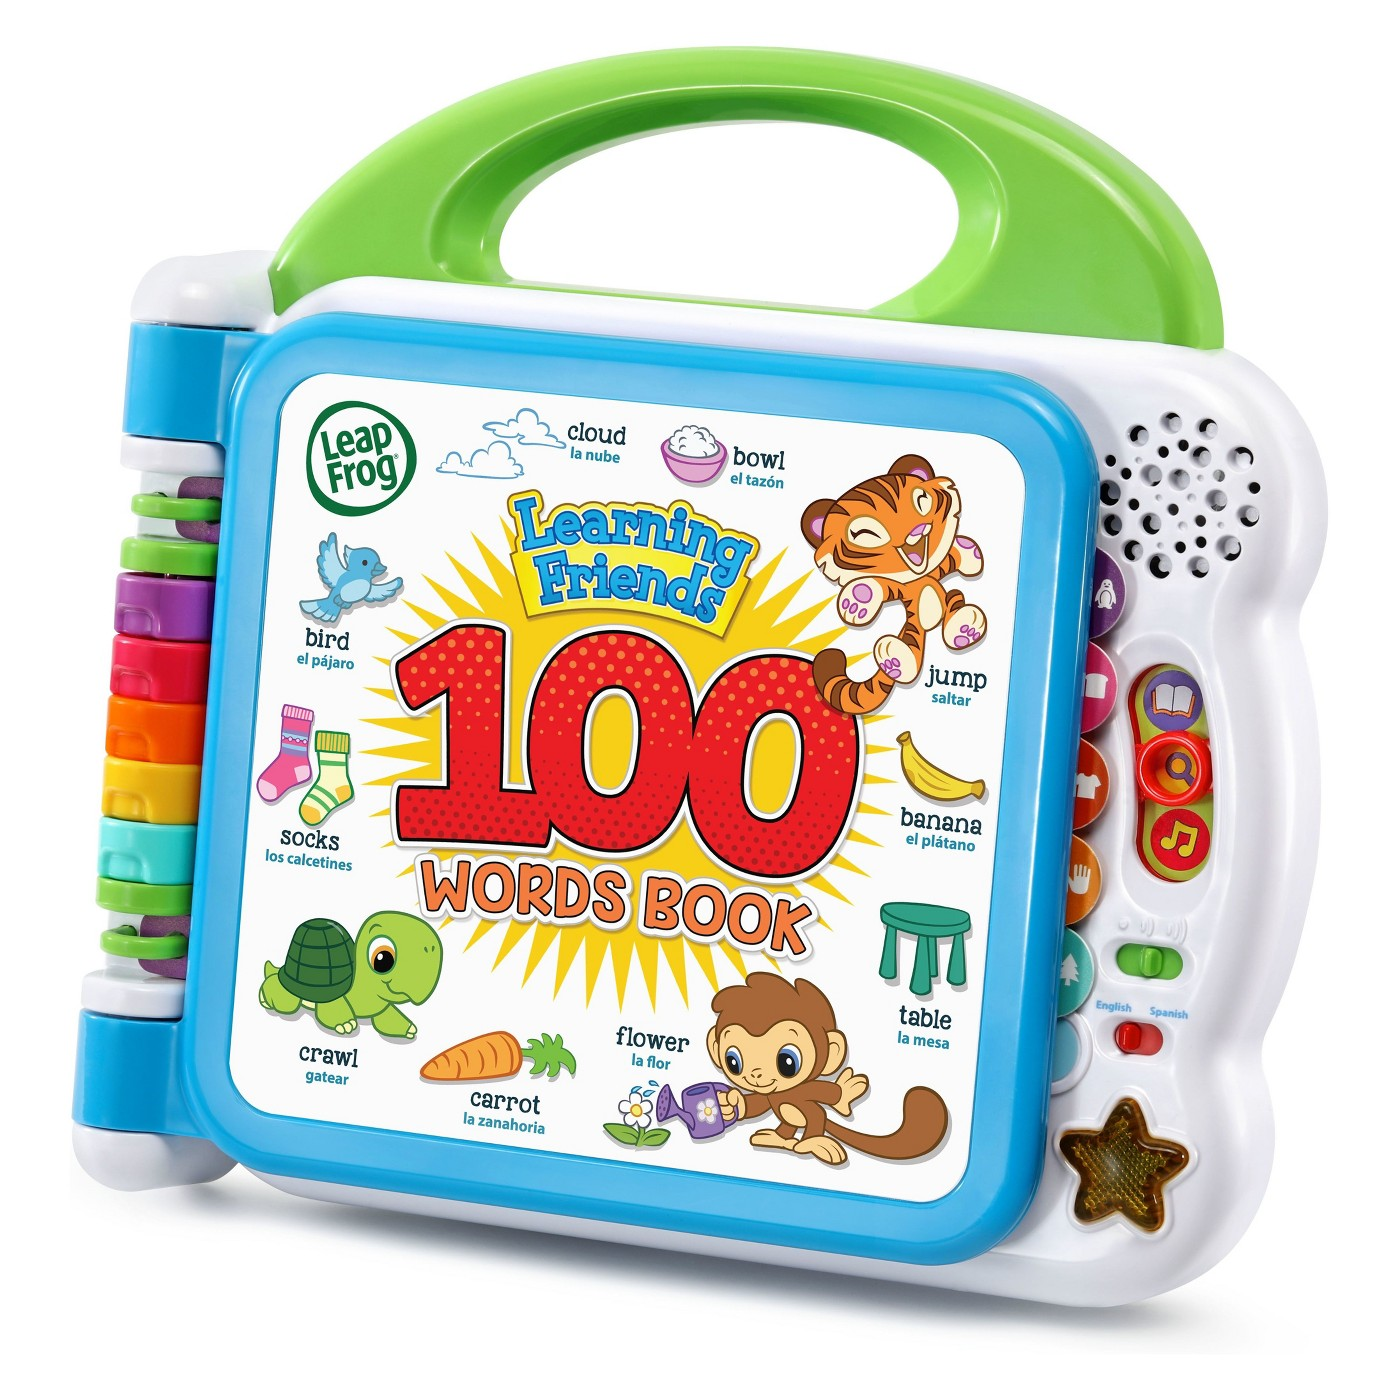 Sách điện tử Leap Frog Learning Friends 100 Words cho bé